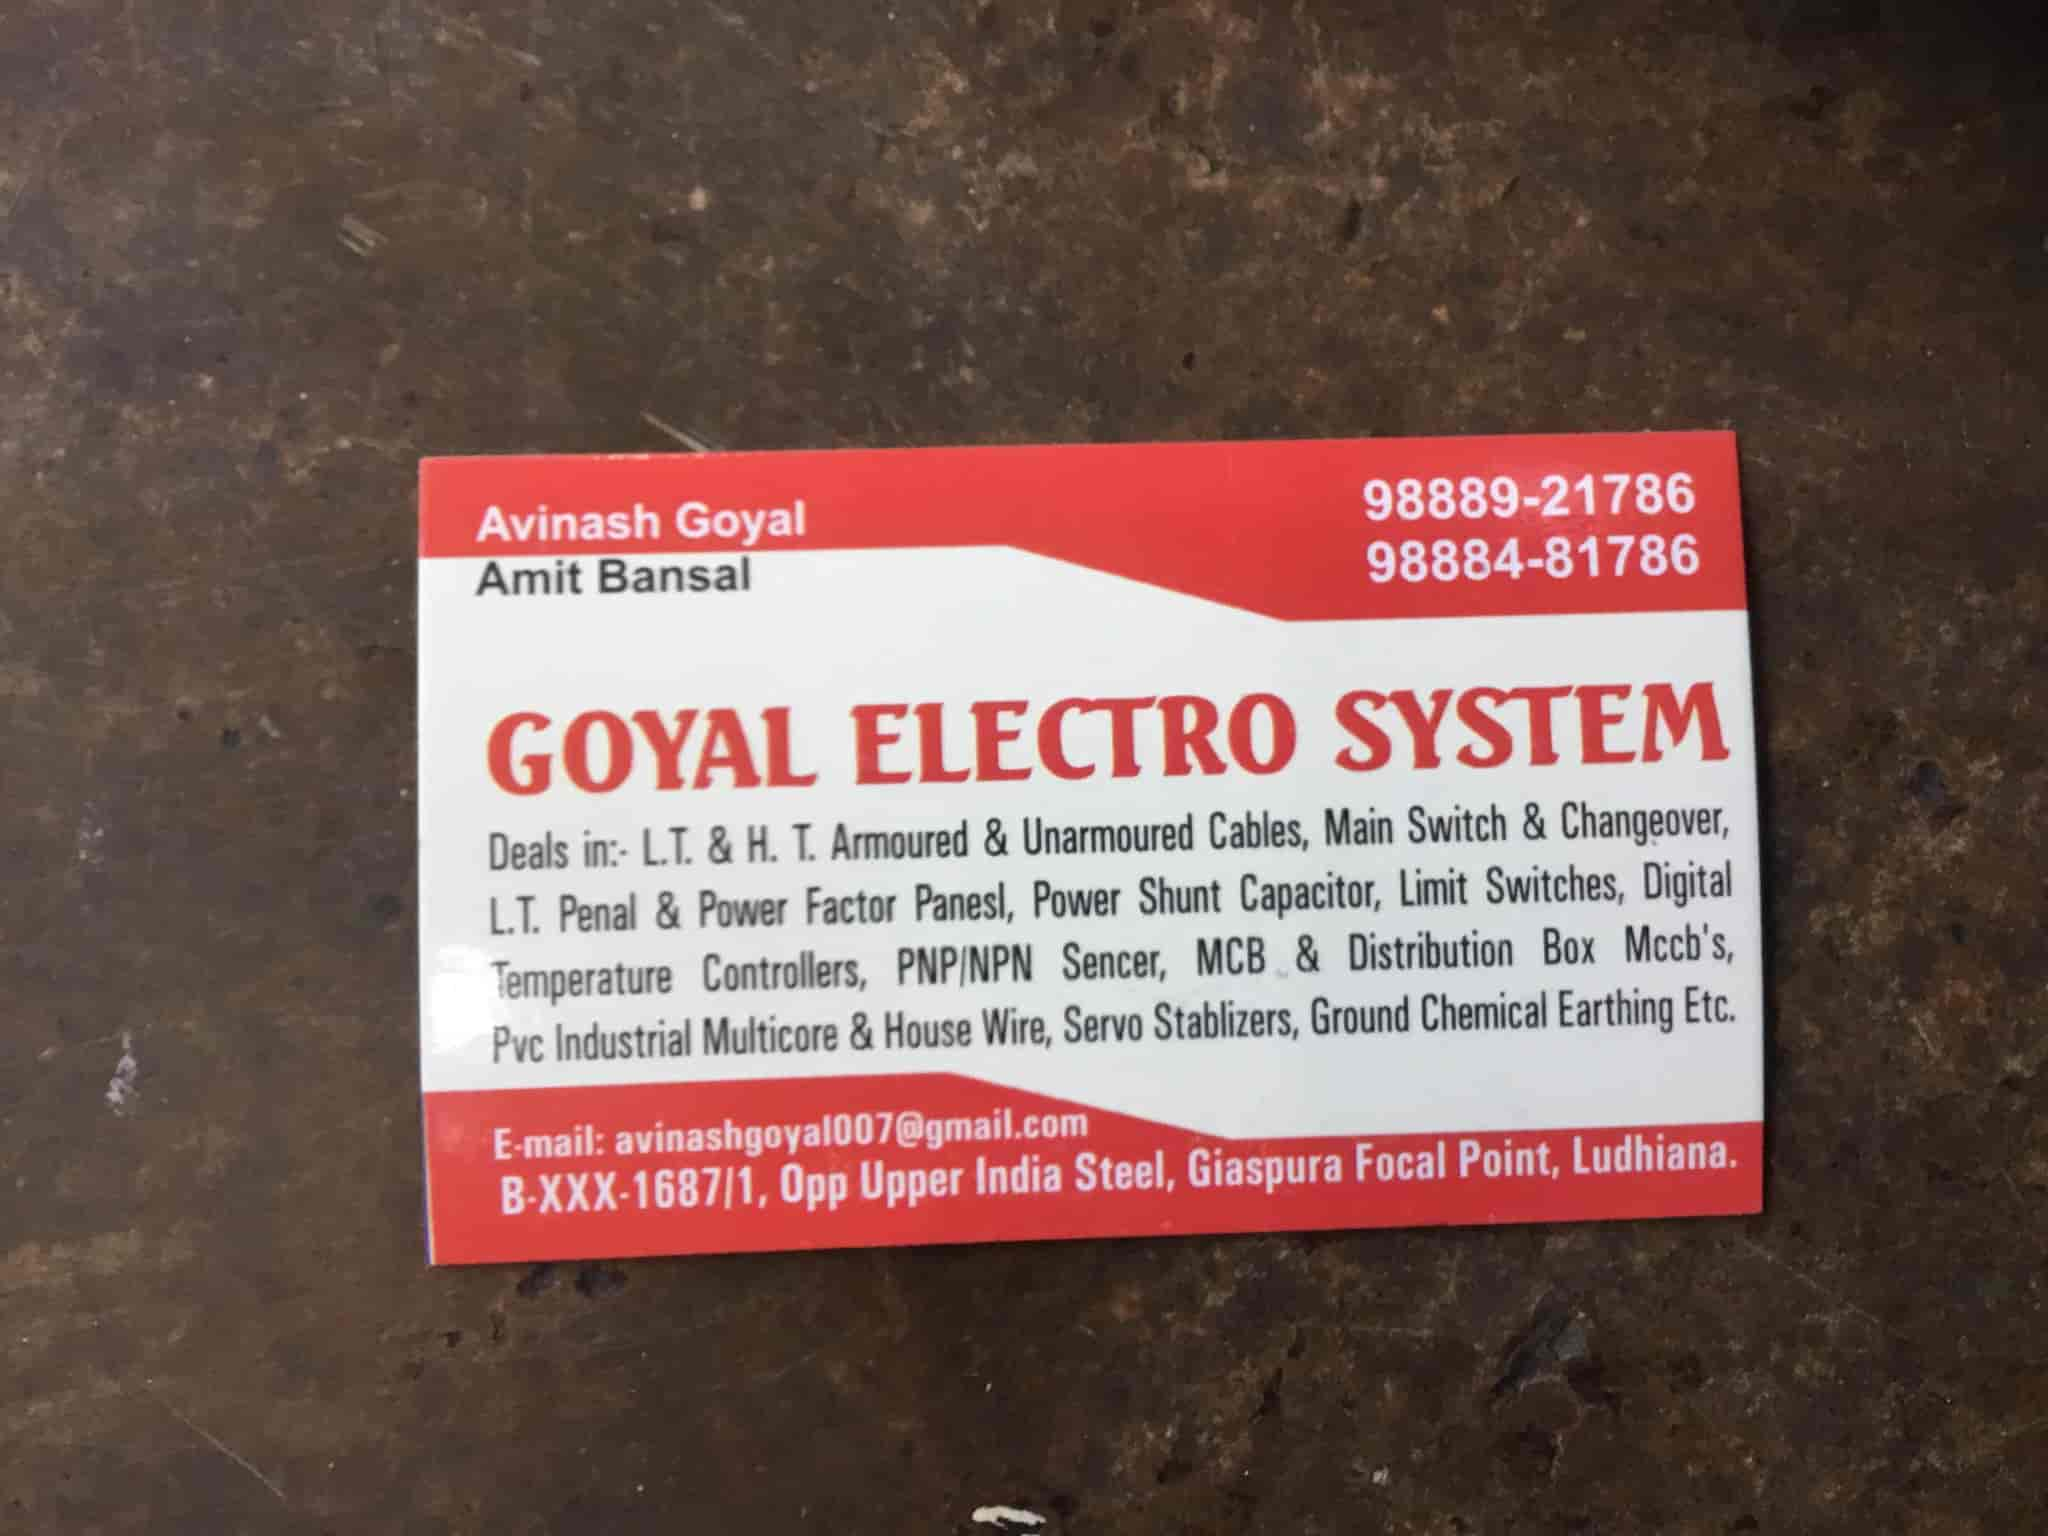 Goel Electro System Focal Point Goyal Pvc Household Wiring In India Dealers Ludhiana Justdial